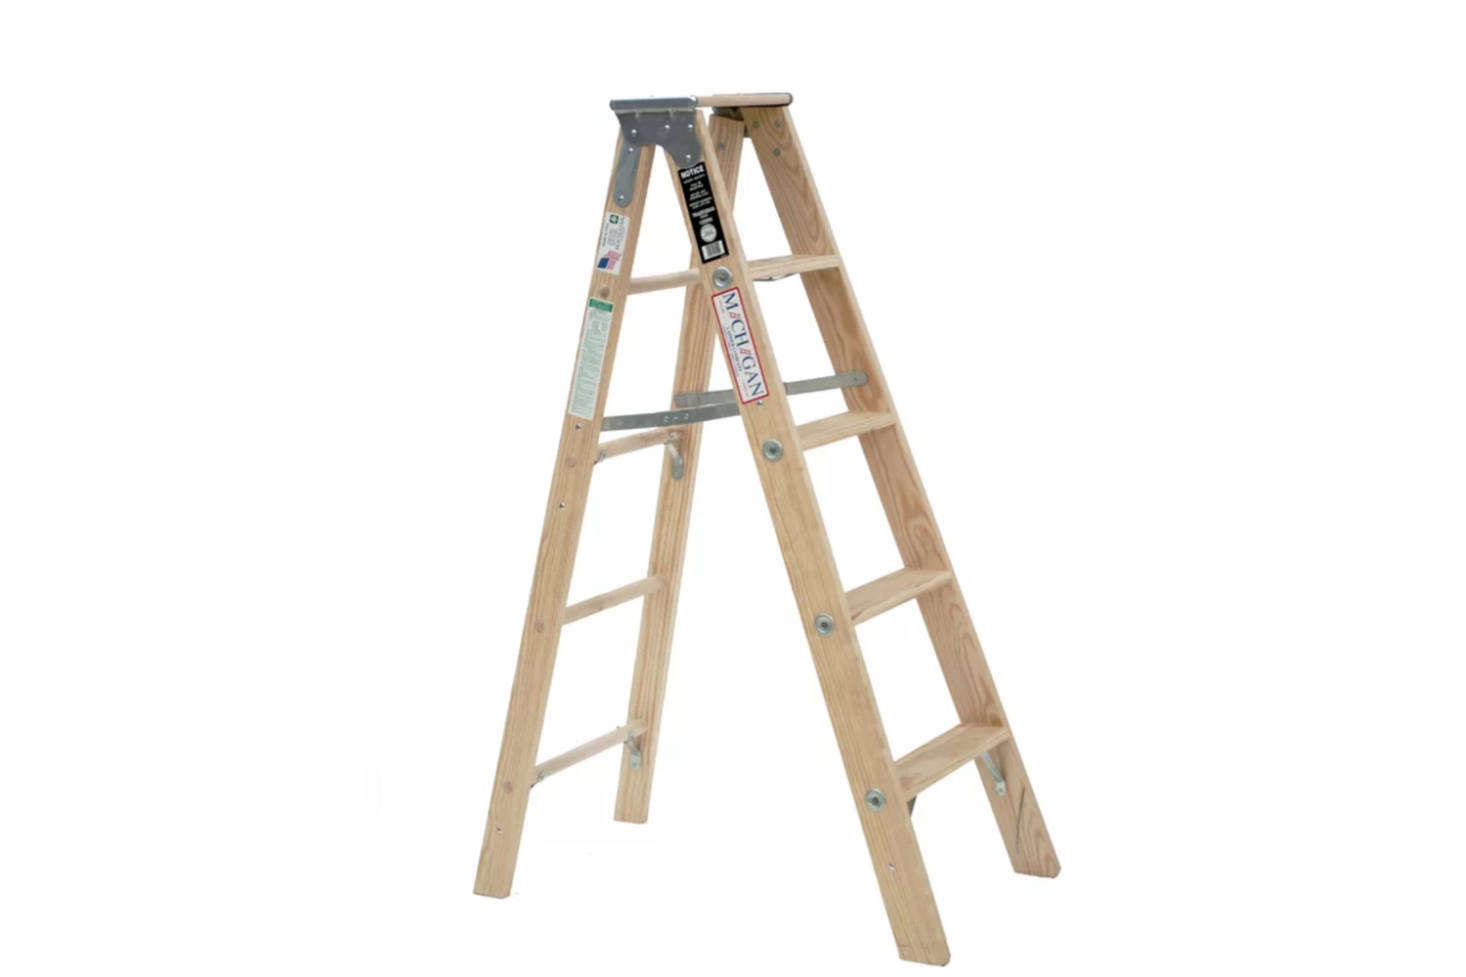 For a classic no-fuss wood ladder, the Michigan 5-Foot Wood Step Ladder is $src=